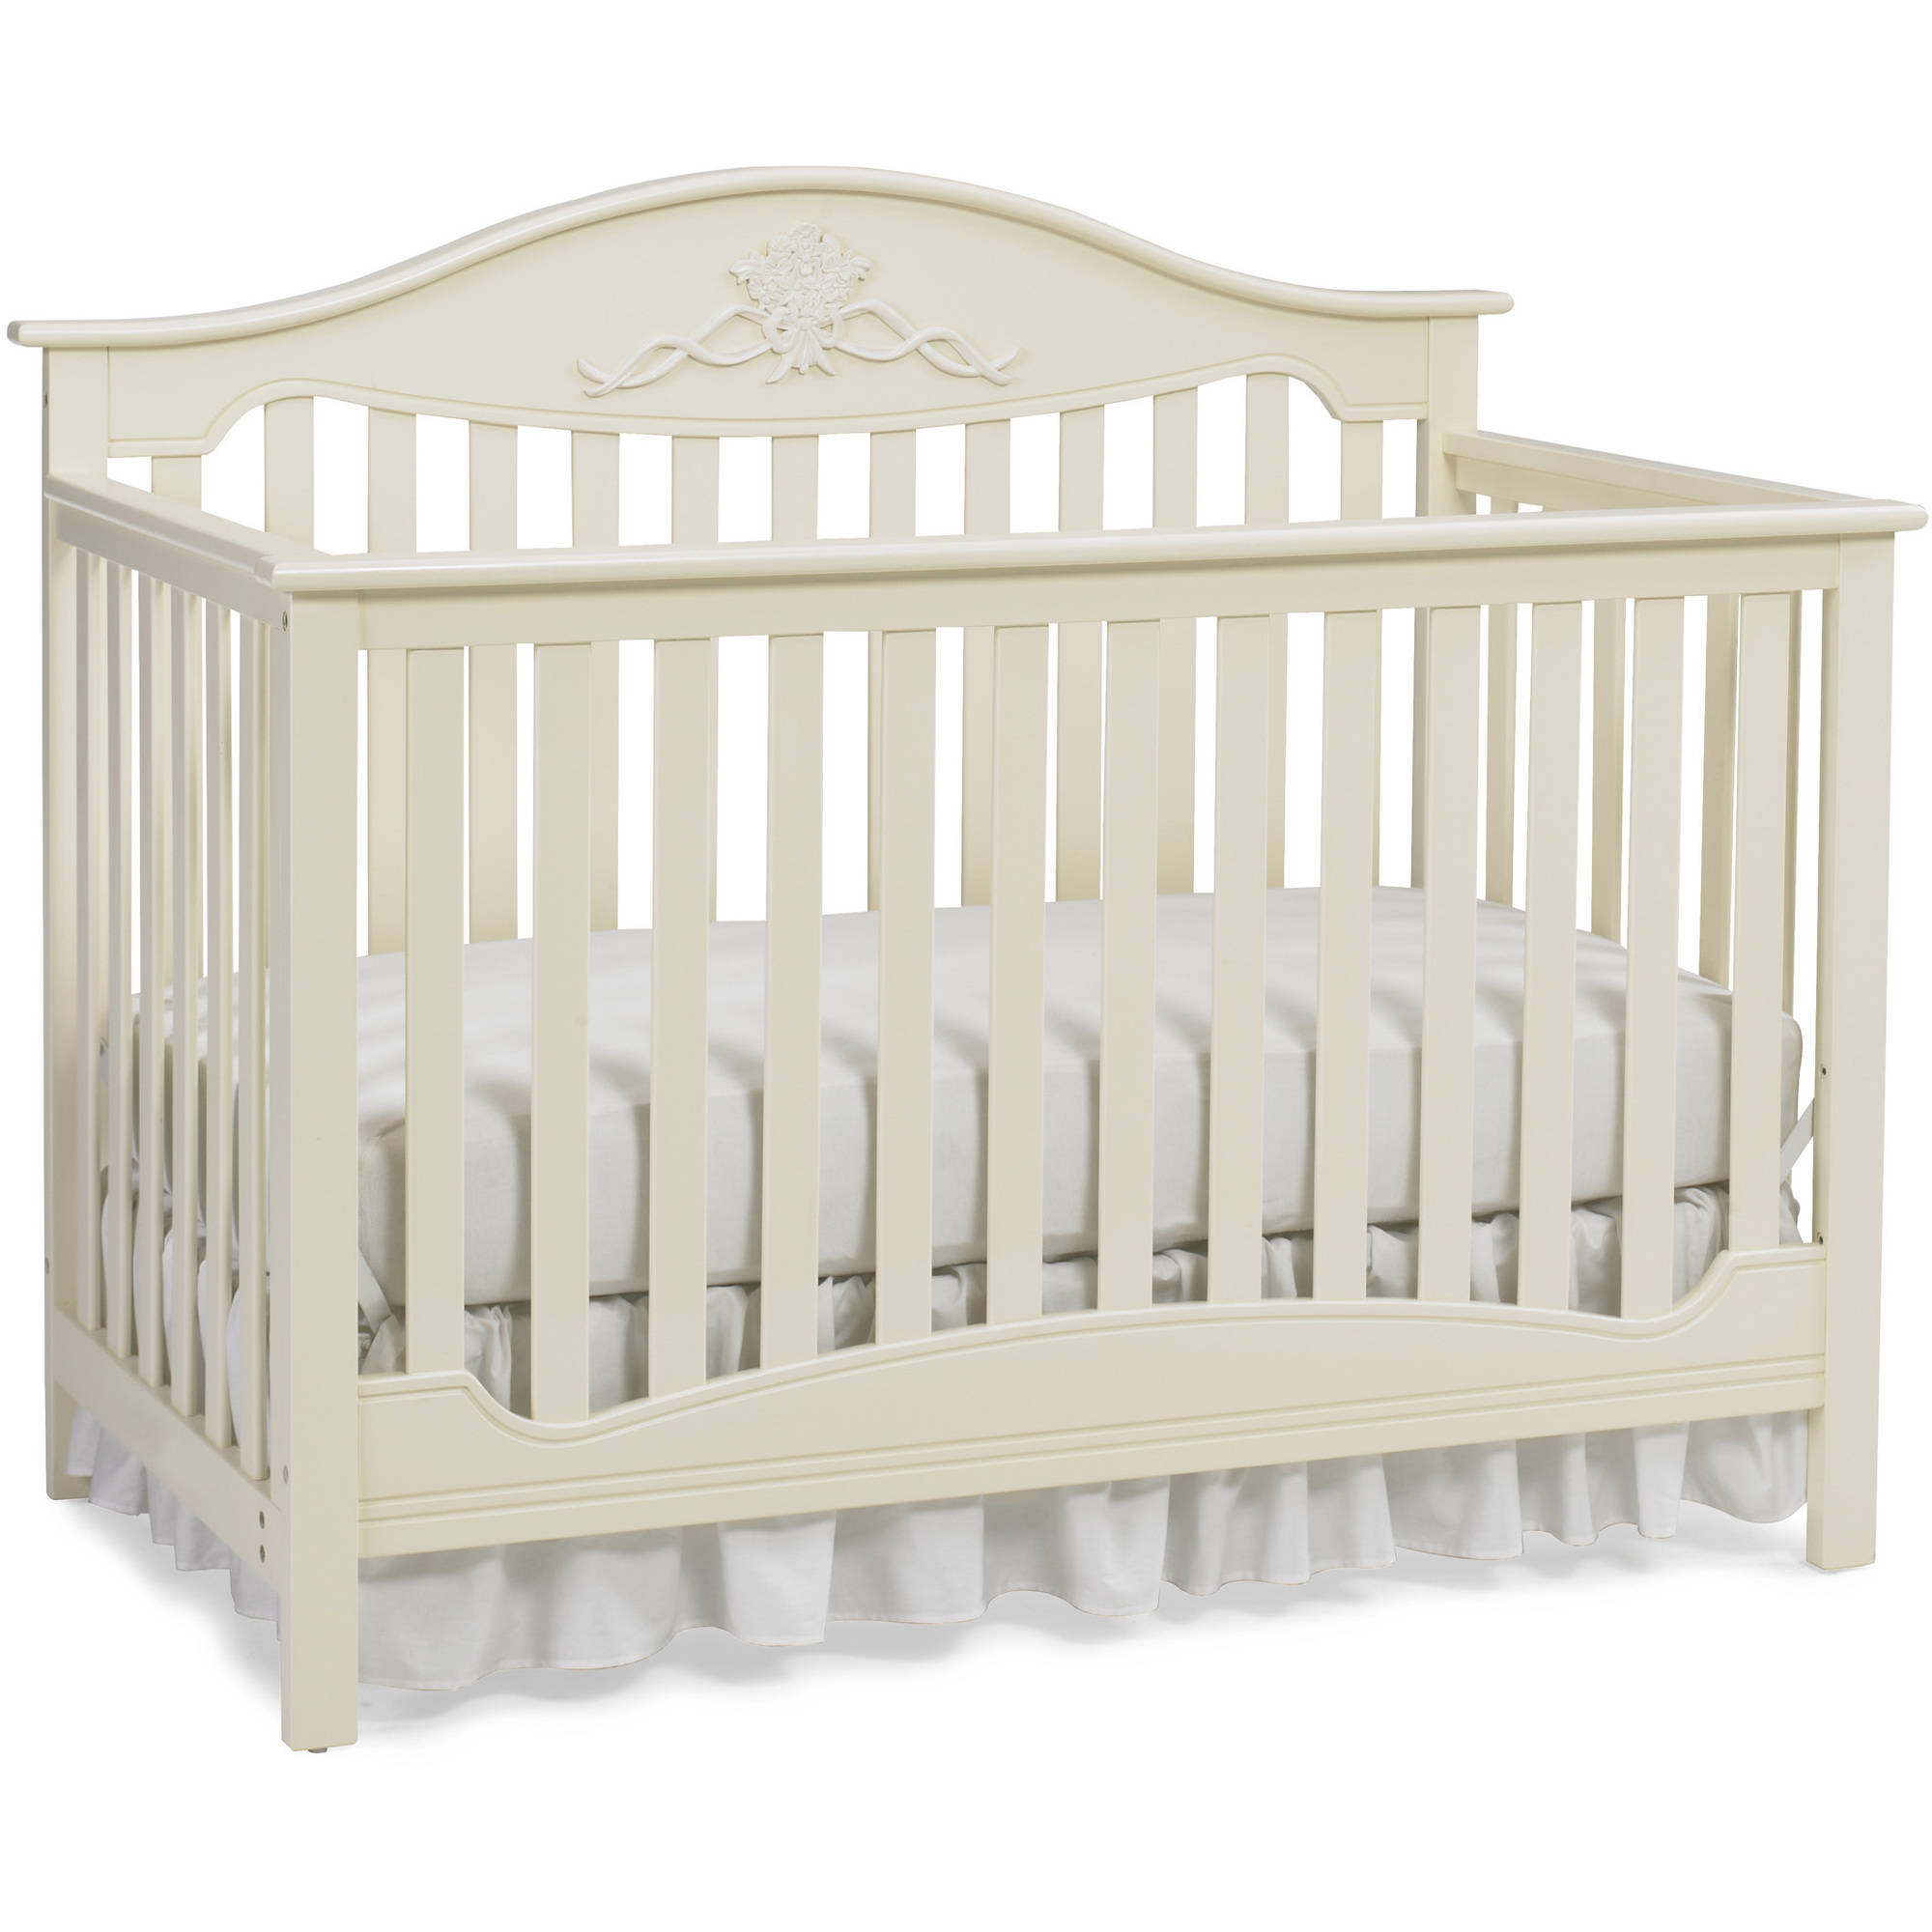 Fisher price 4 in 1 durable mia convertible baby crib to full bed sugar cookie